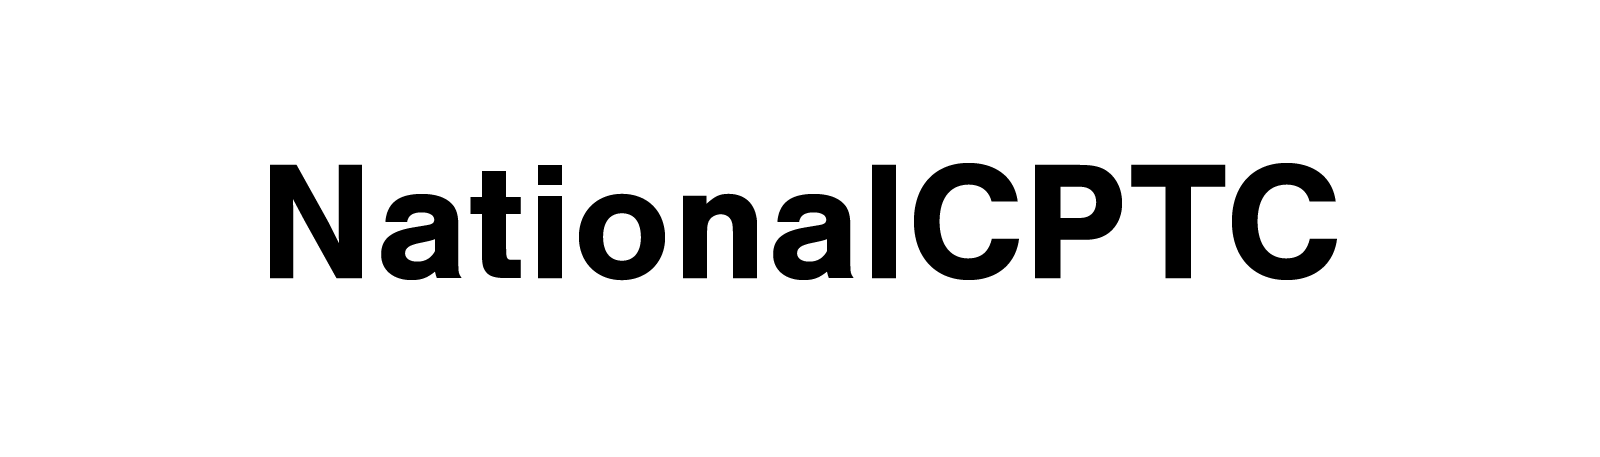 NationalCPTC Logo.png